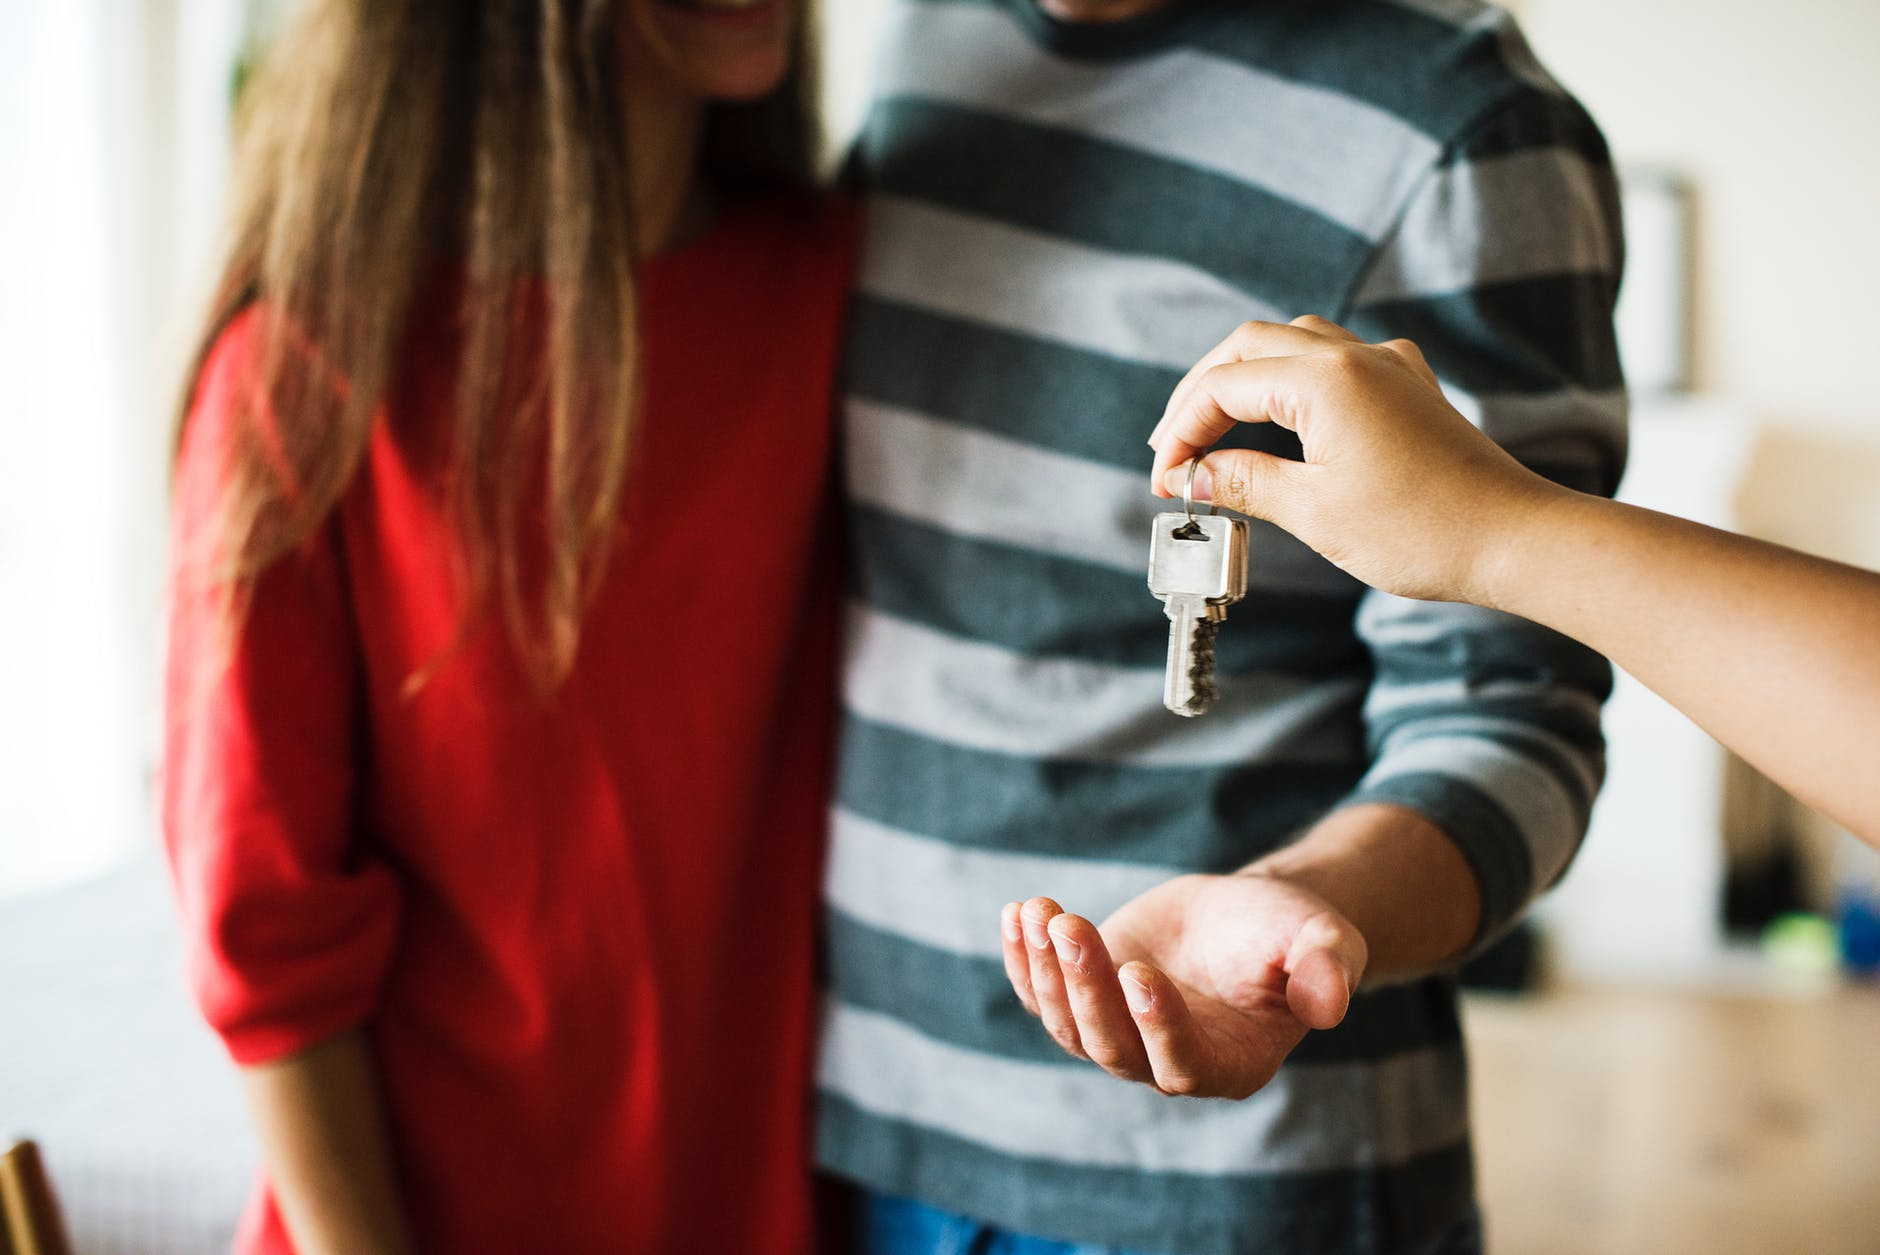 Two people getting the keys to their home.